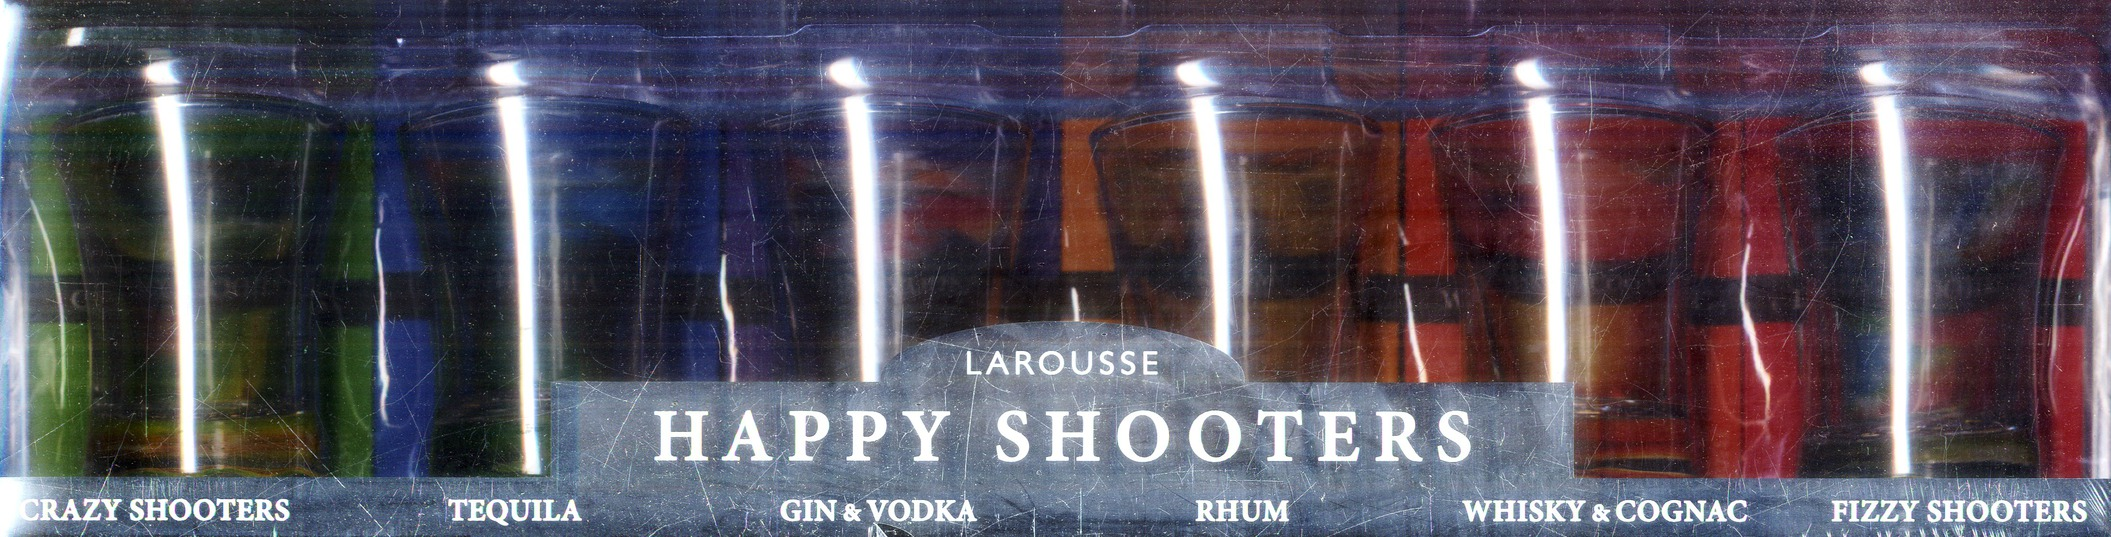 HAPPY SHOOTERS